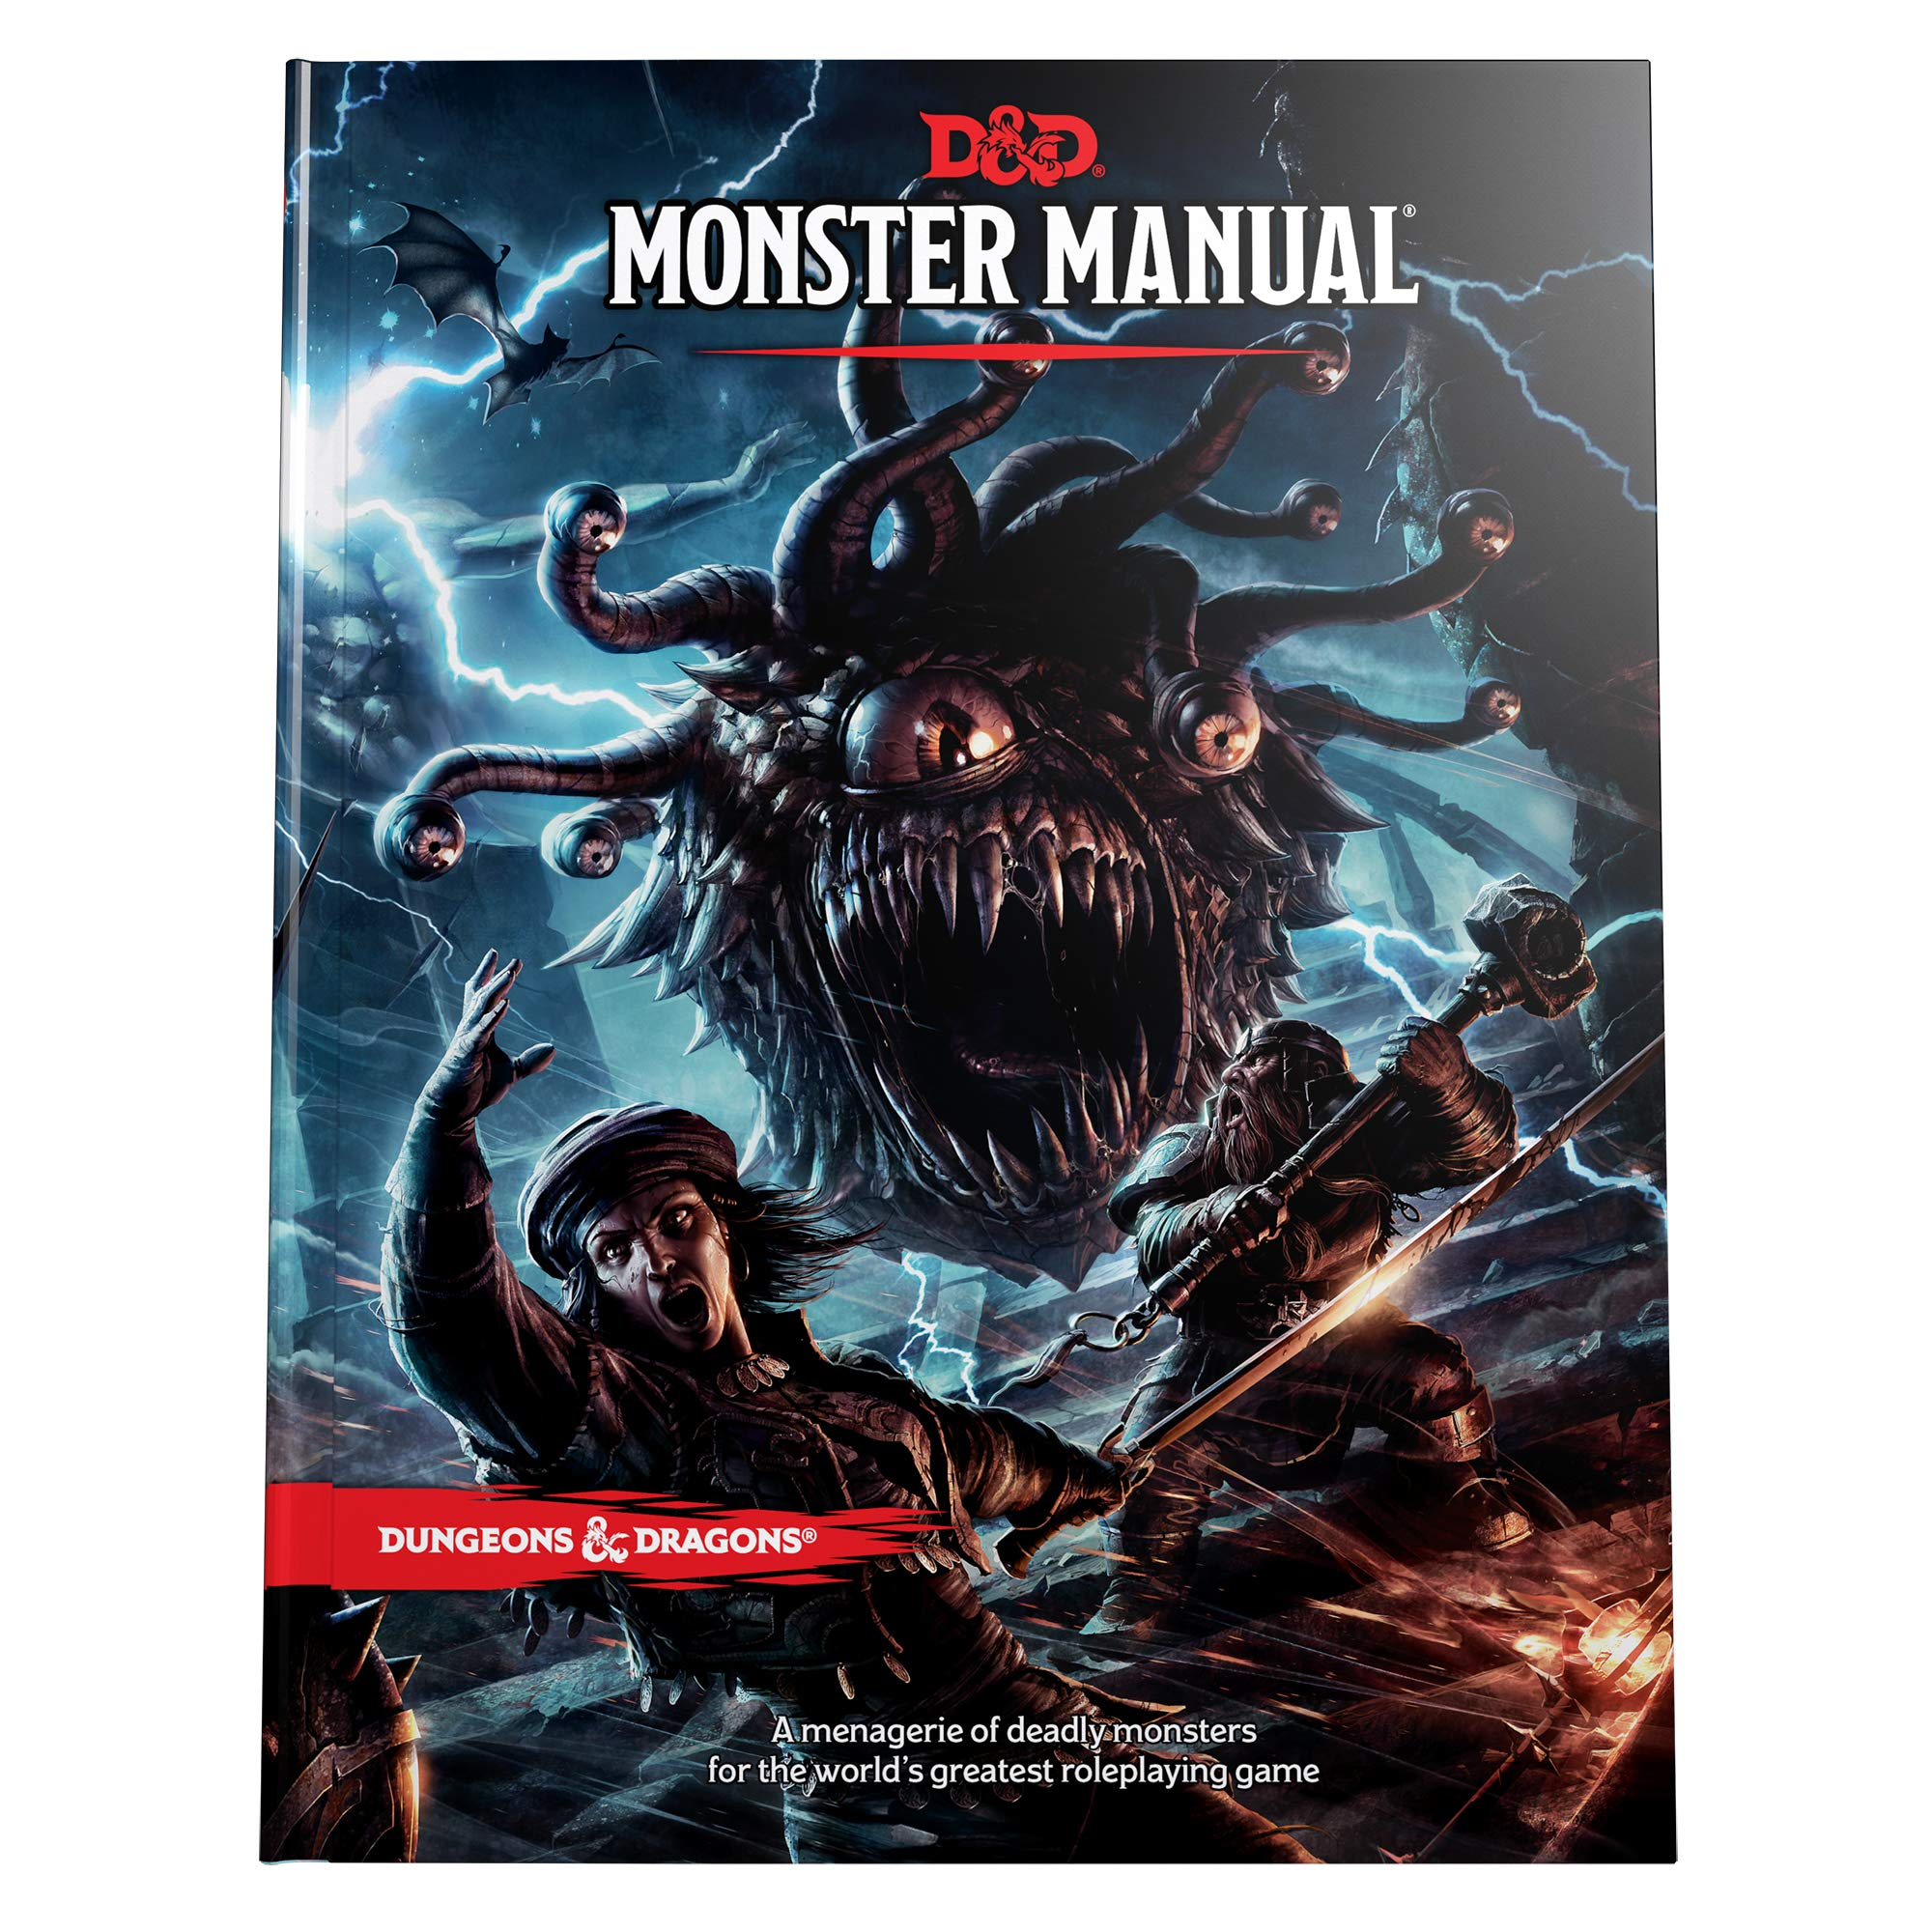 Dungeons & Dragons Monster Manual (Core Rulebook, D&D Roleplaying Game) by Dungeons and Dragons